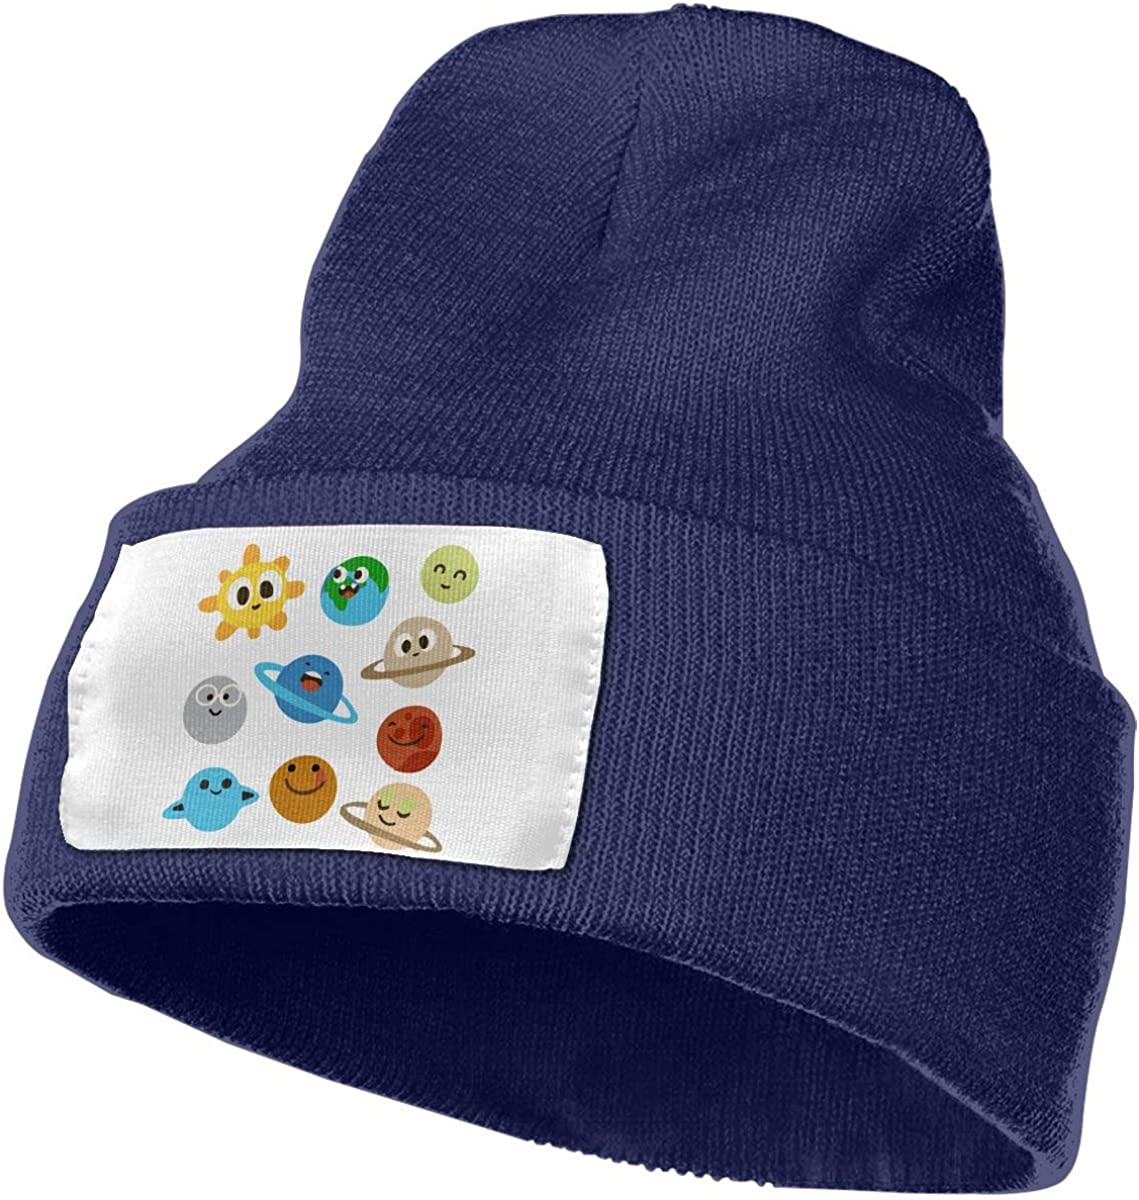 TAOMAP89 Cute Solar System Men /& Women Skull Caps Winter Warm Stretchy Knit Beanie Hats